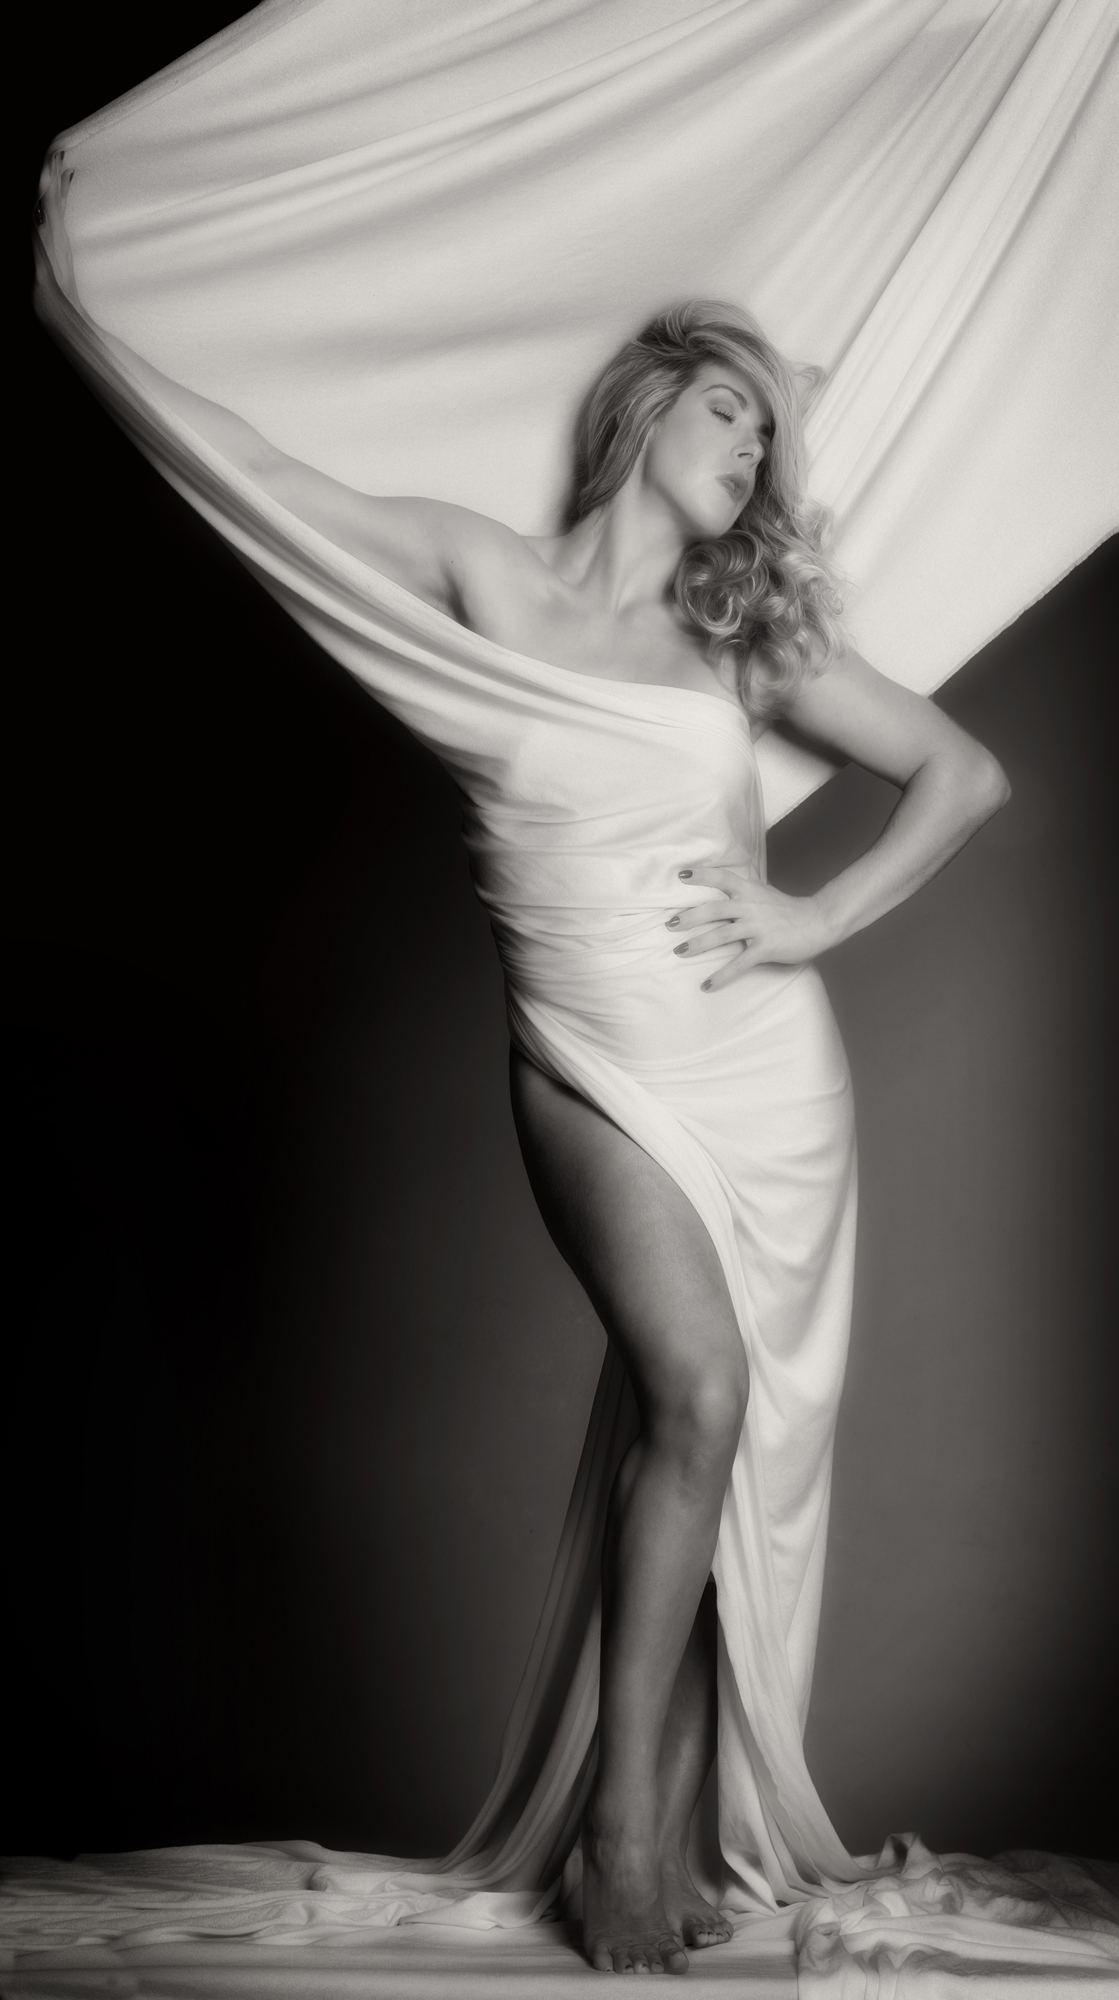 Image of Black and White, Fine Art, Glamour, Boudoir, Glamour Photography